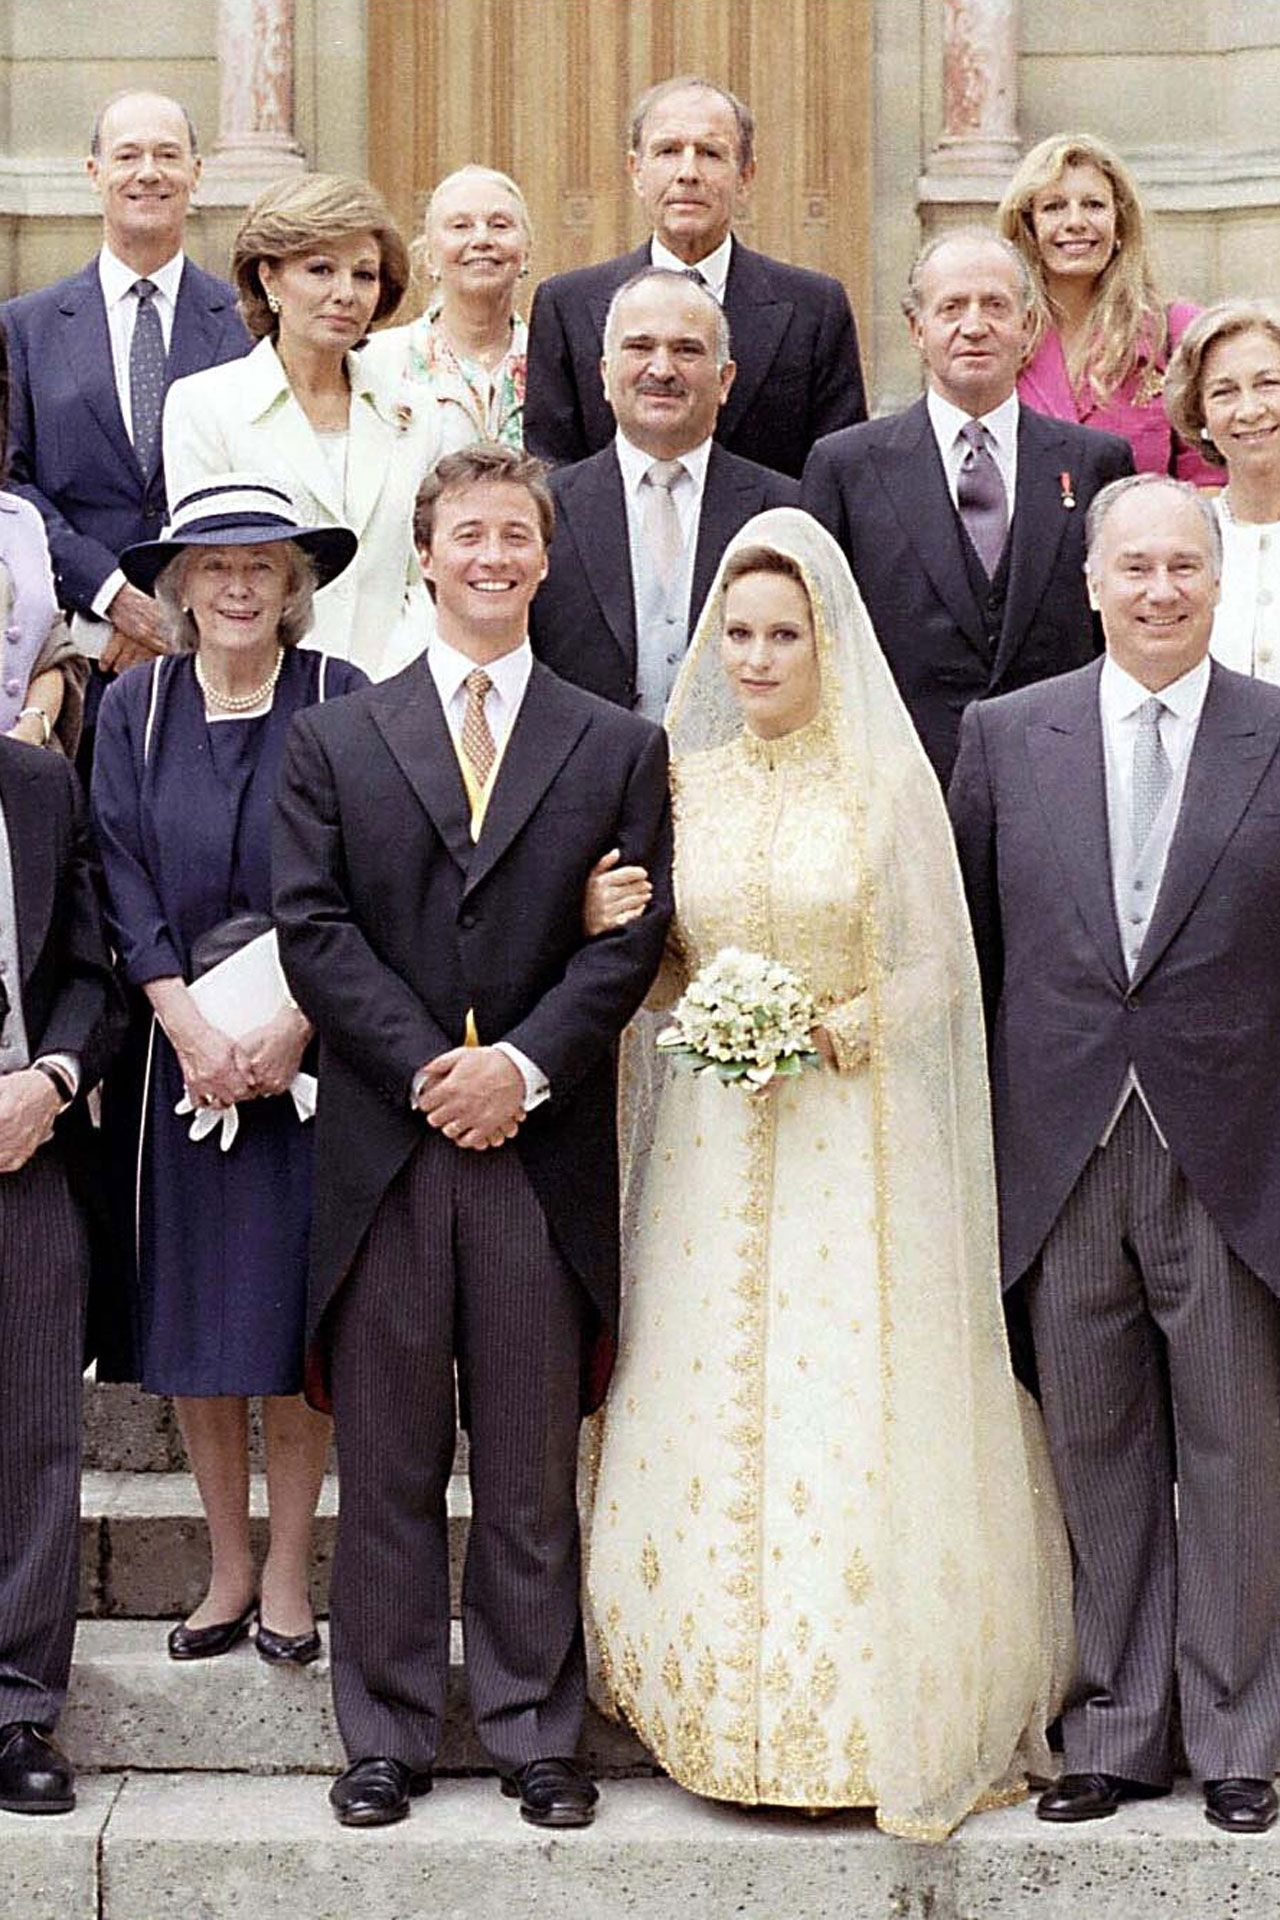 JUNE 1997 – Princess Zahra Aga Khan marries Mark Boyden at the Château de Chantilly in Paris.